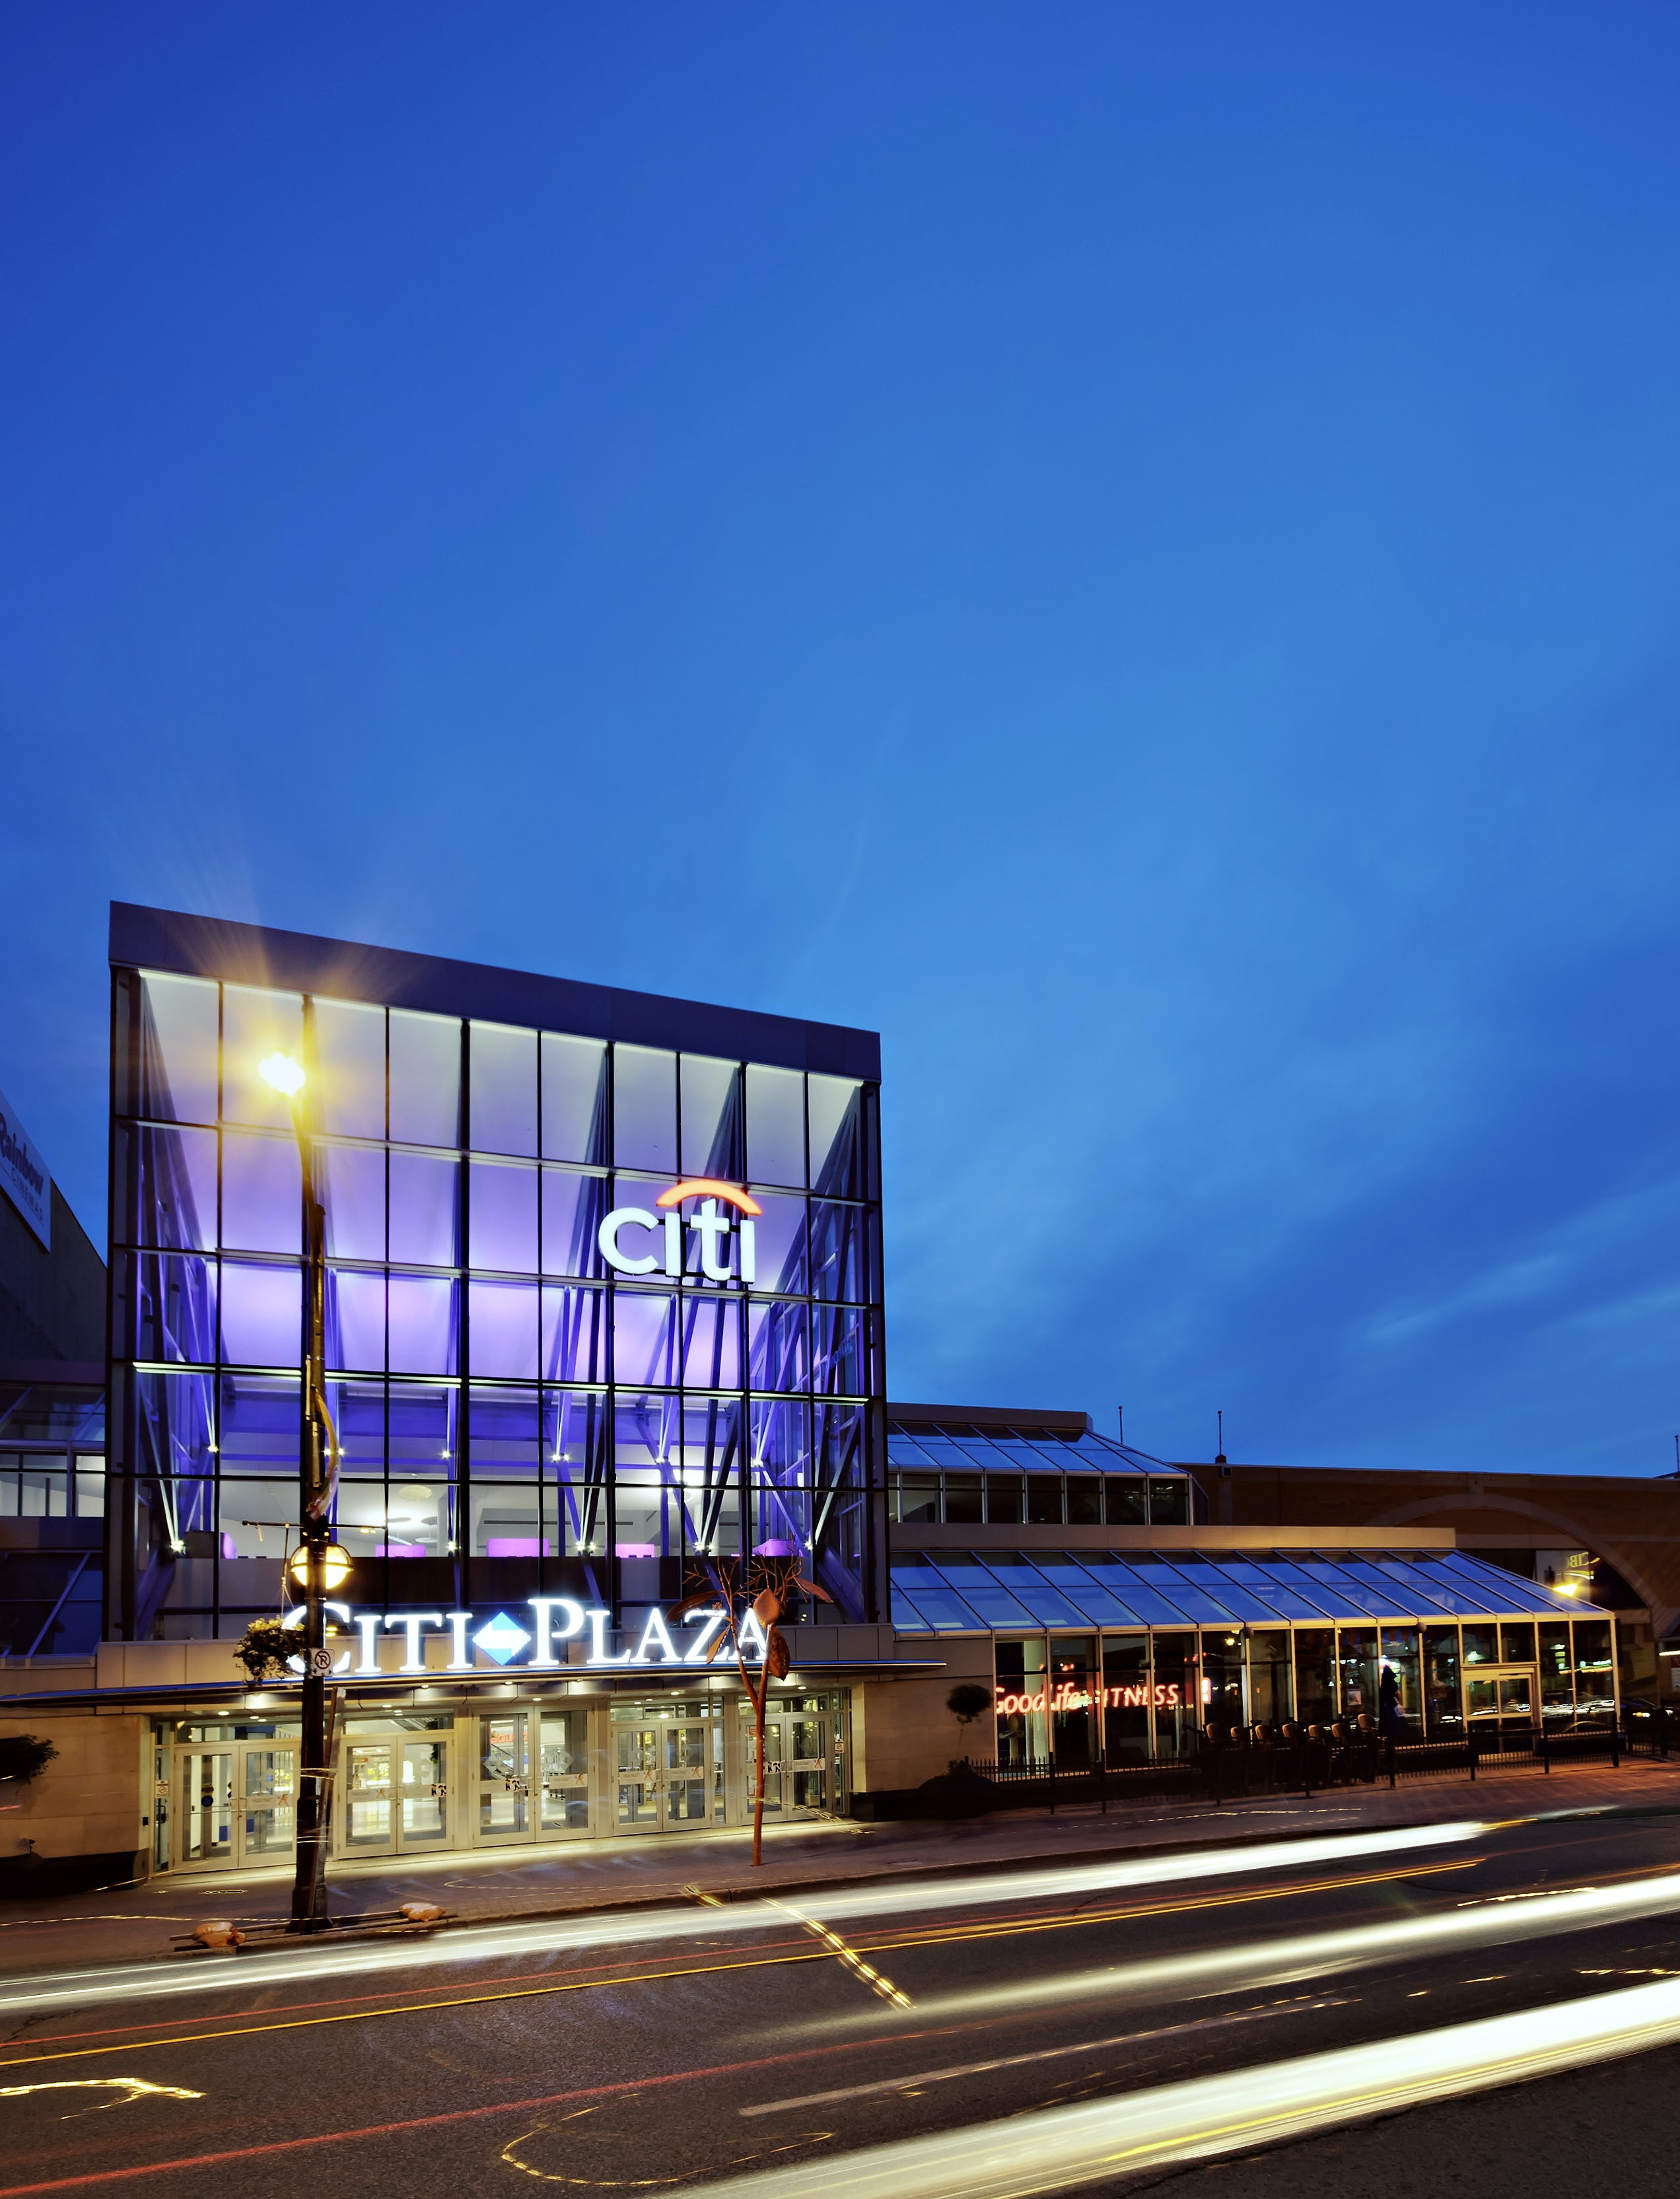 Citi Plaza during Nighttime